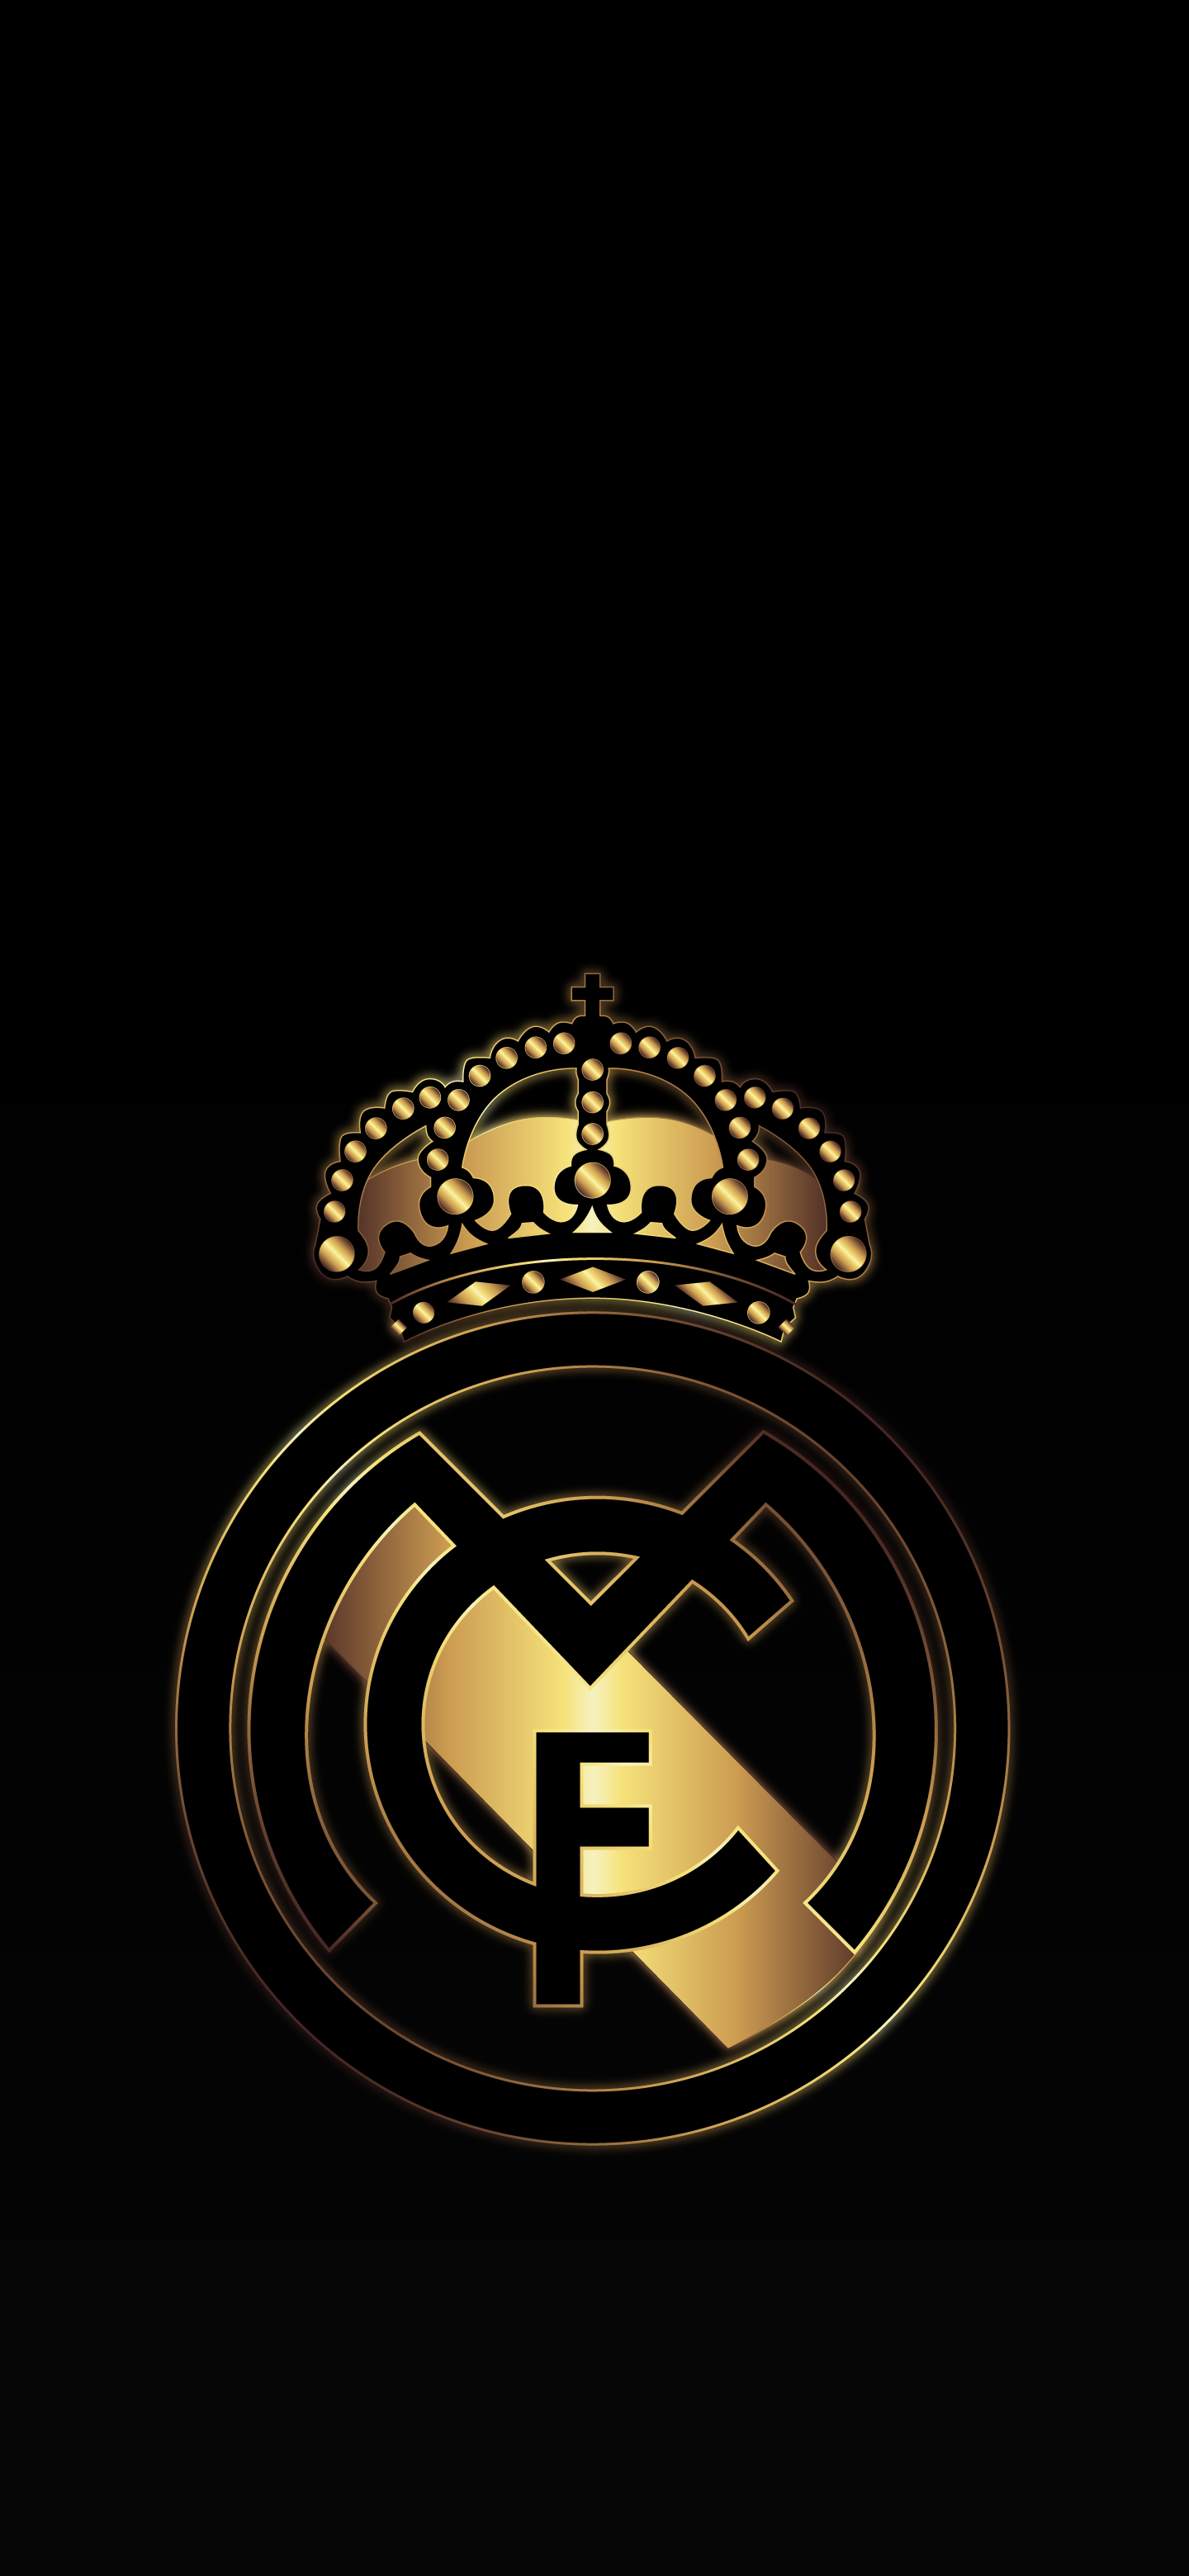 Real Madrid Wallpaper Hd 2019 Hd Football In 2020 Real Madrid Wallpapers Real Madrid Logo Real Madrid Team